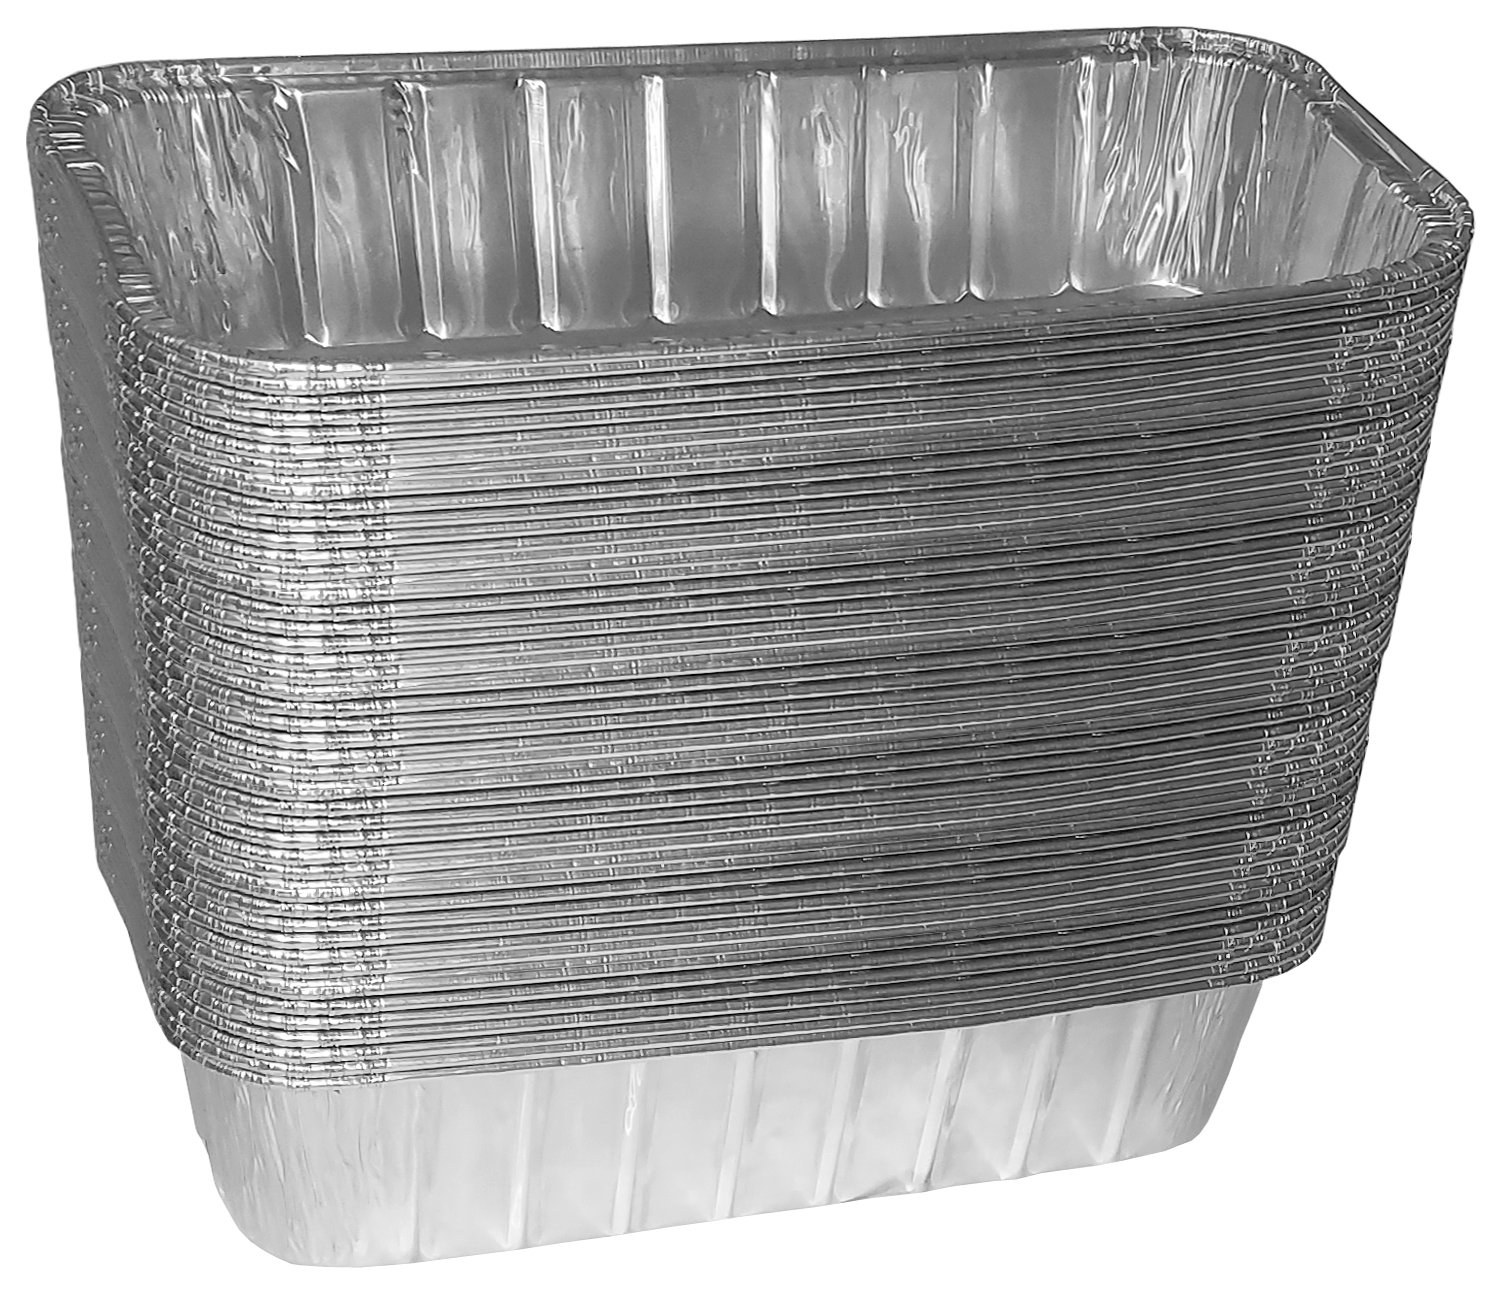 TYH Supplies 50 Disposable 9-3/4 x 3-3/4 inch BBQ Drip Pan Tray Aluminum Foil Tin Liners Grease Catch Pans Replacement Liner Trays For Weber Grill